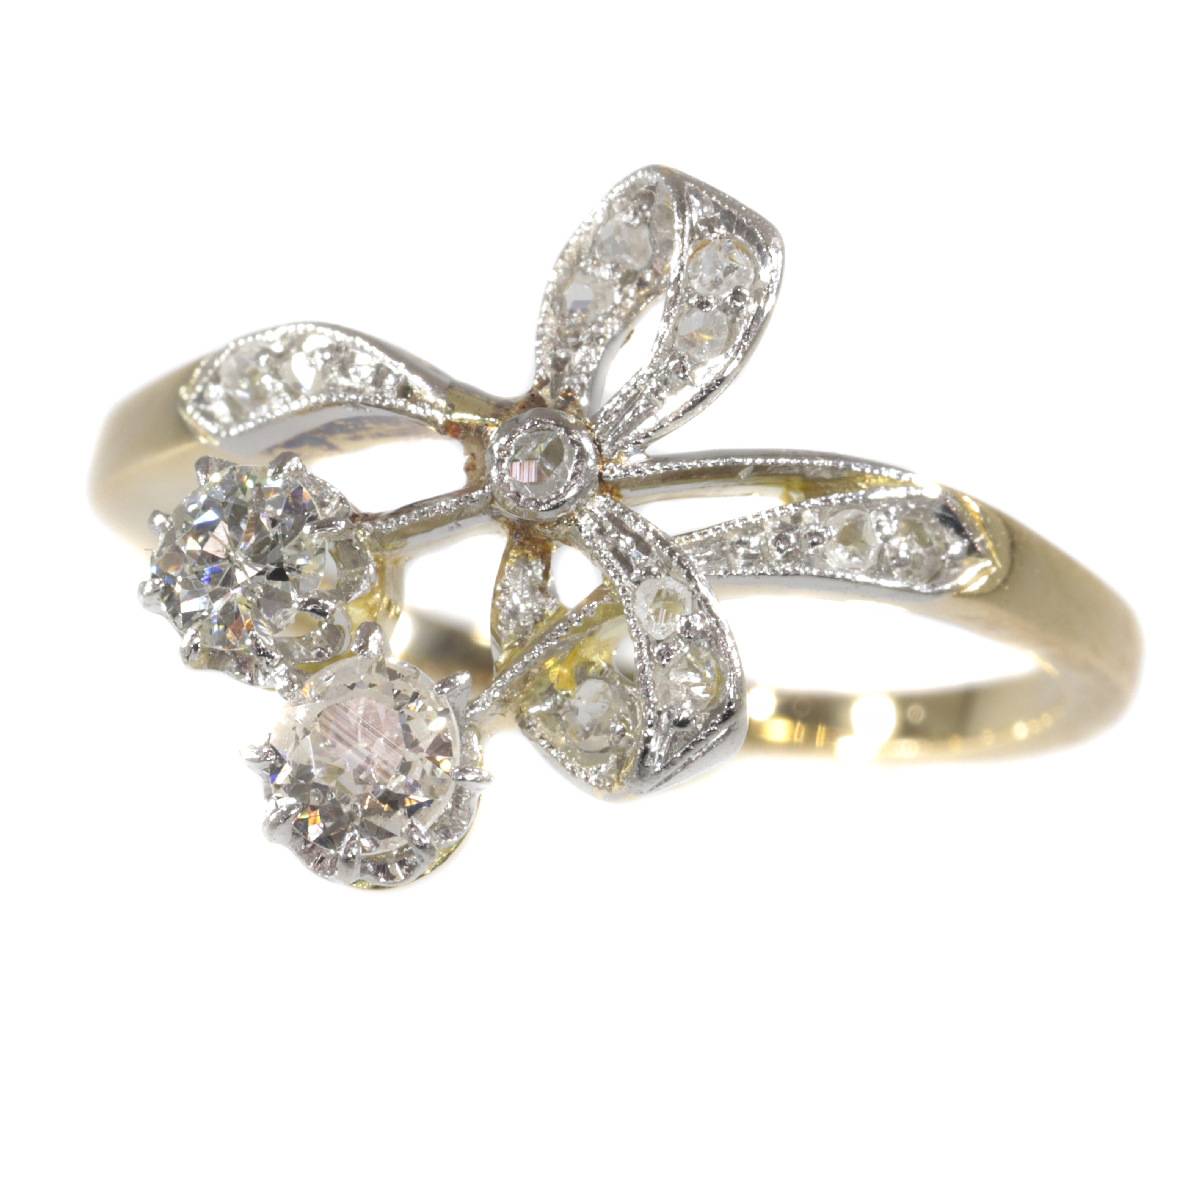 Charming Belle Epoque ring with diamonds